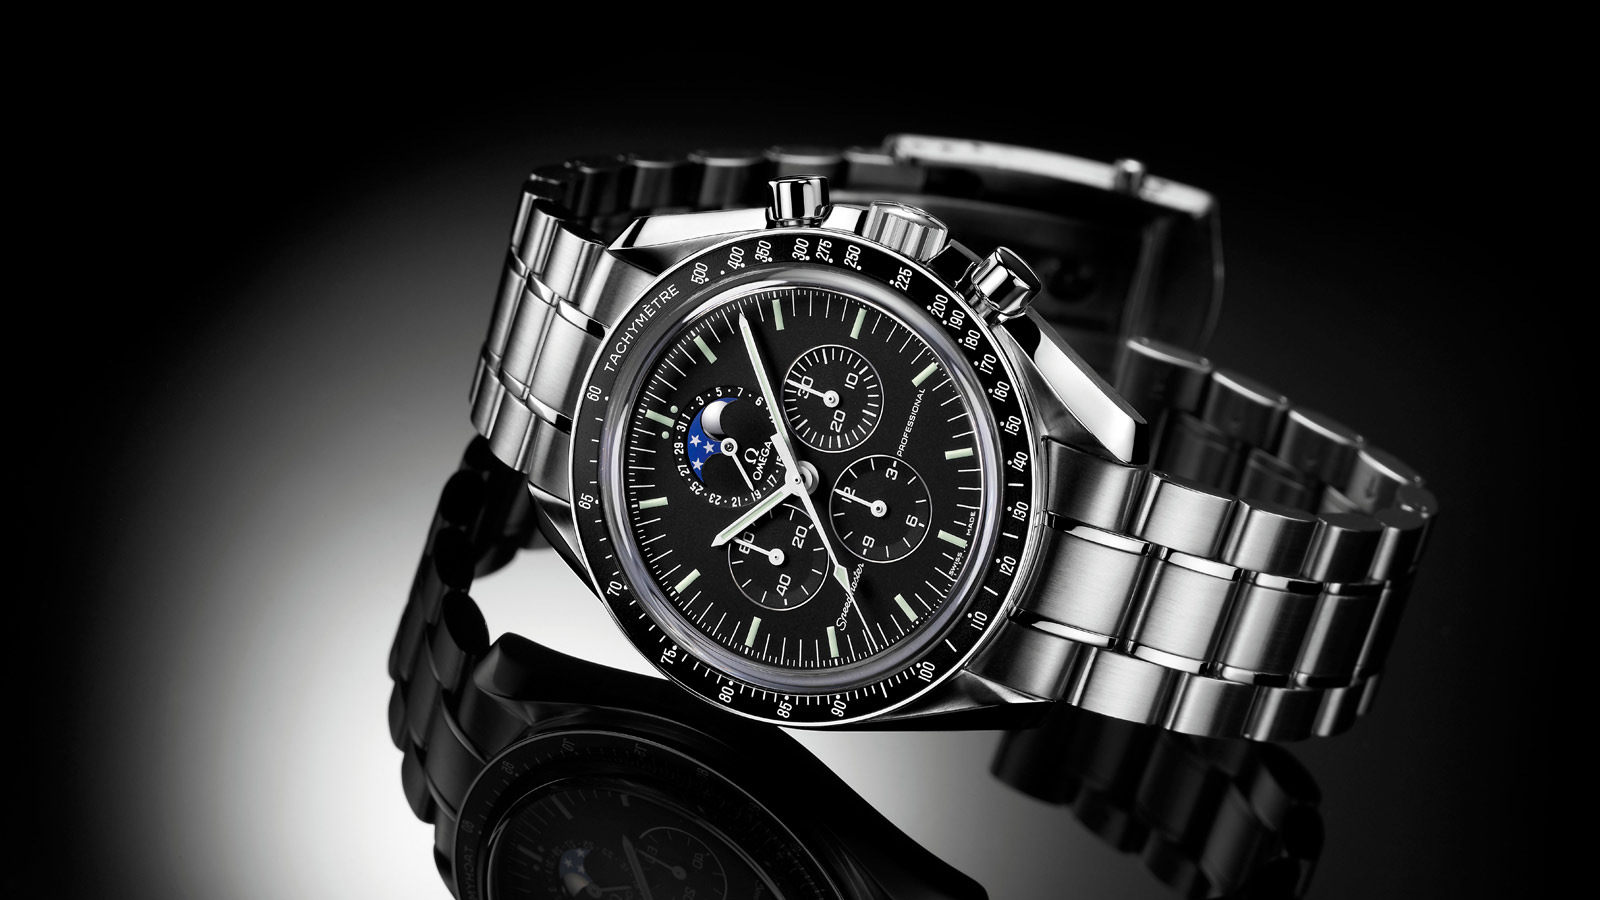 Speedmaster Moonwatch Moonwatch Professional Chronograph 42 mm - 3576.50.00 - View 1